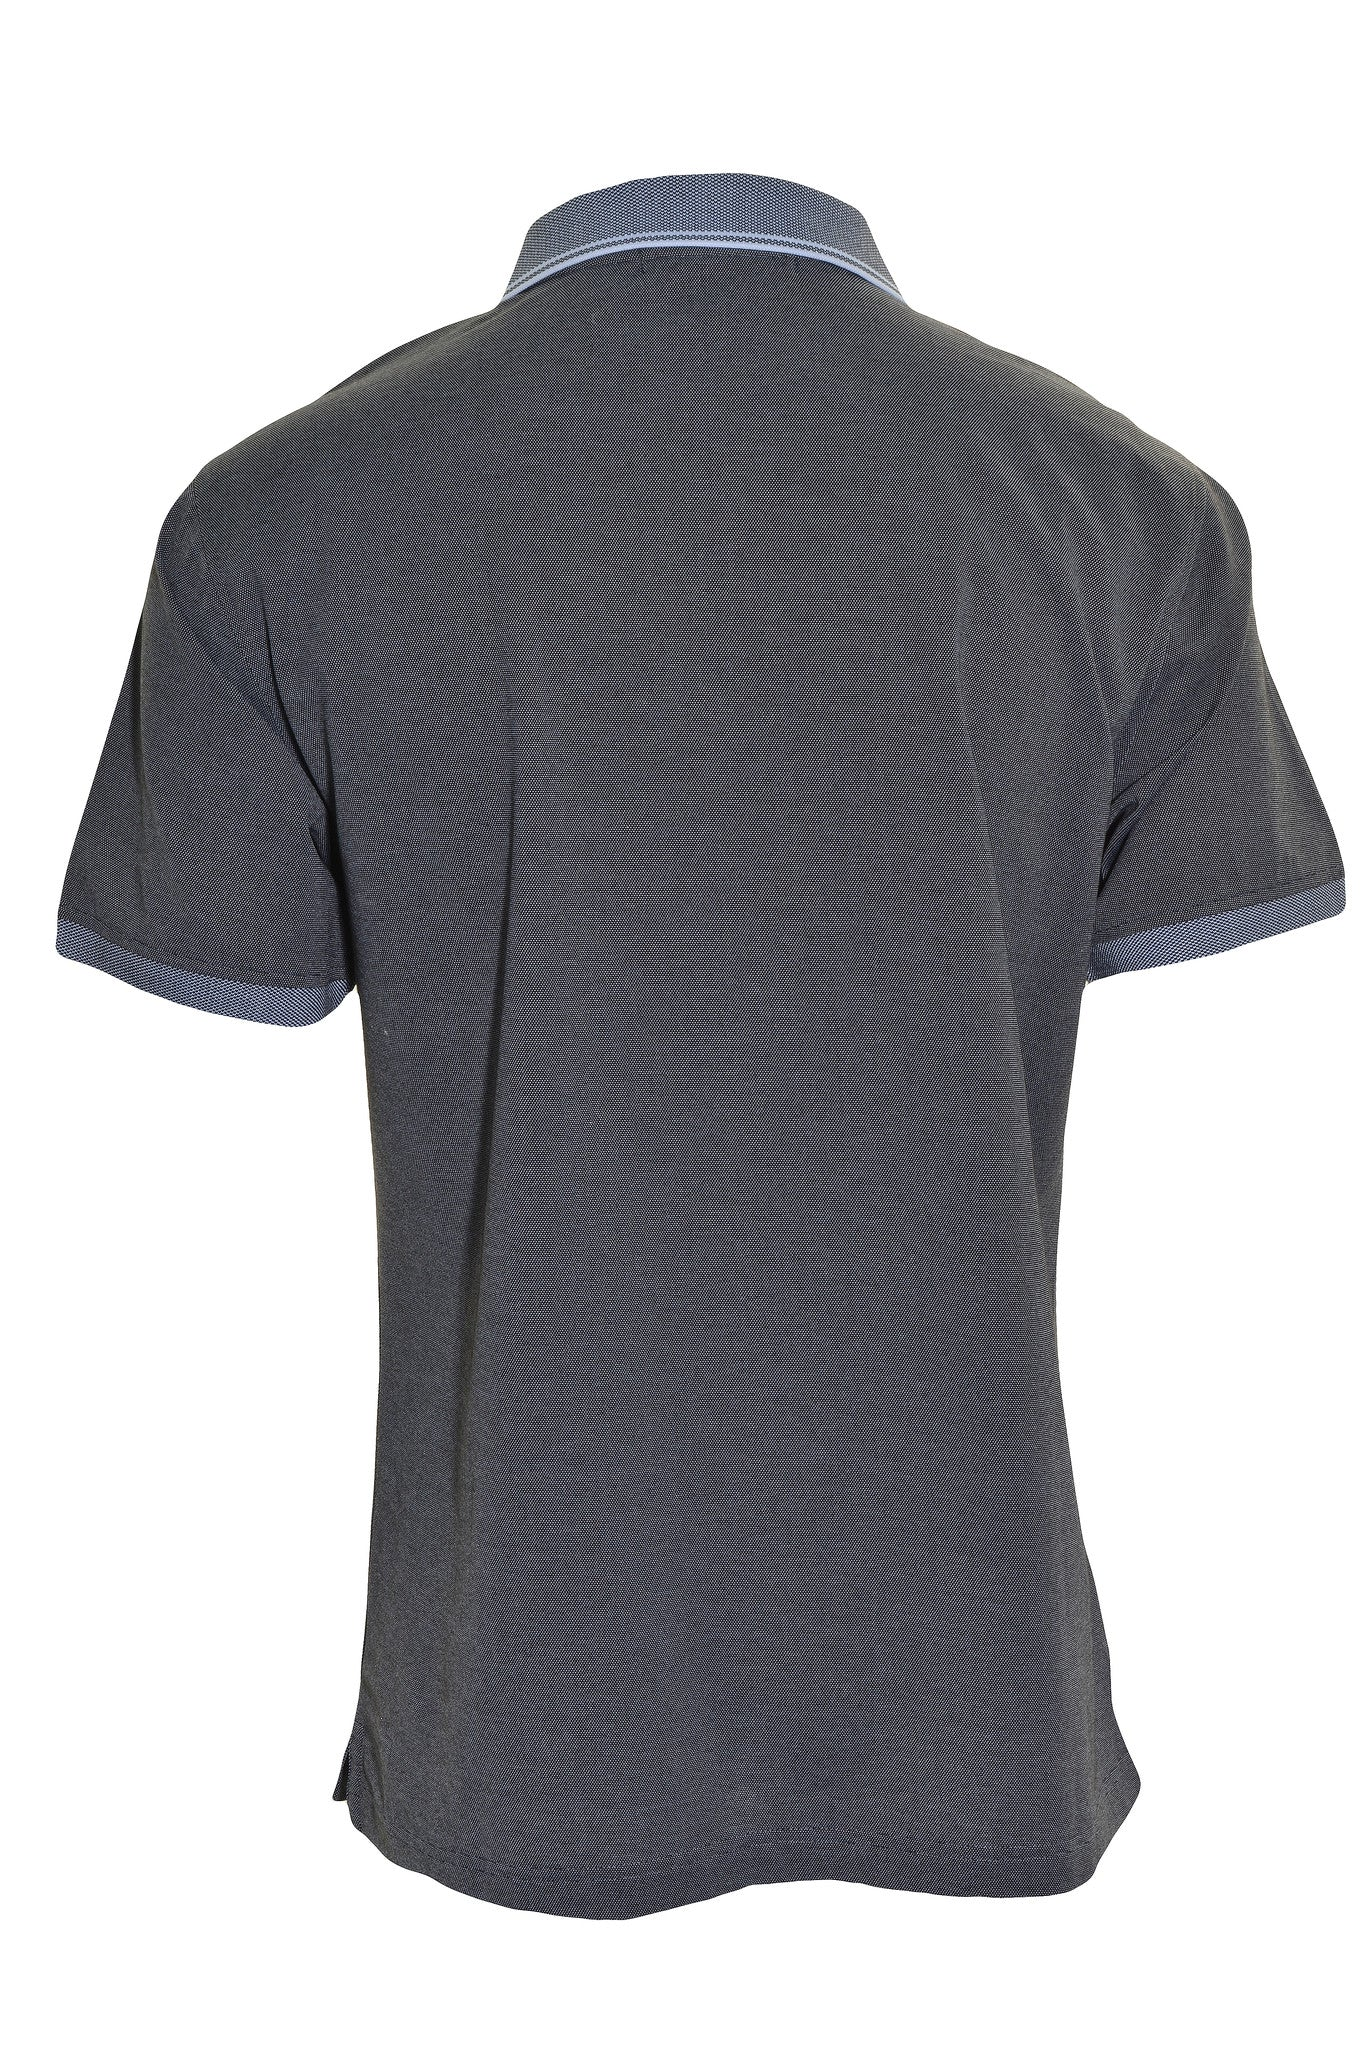 Hathaway Mens Relaxed Fit  Polo Shirt | Gray Black